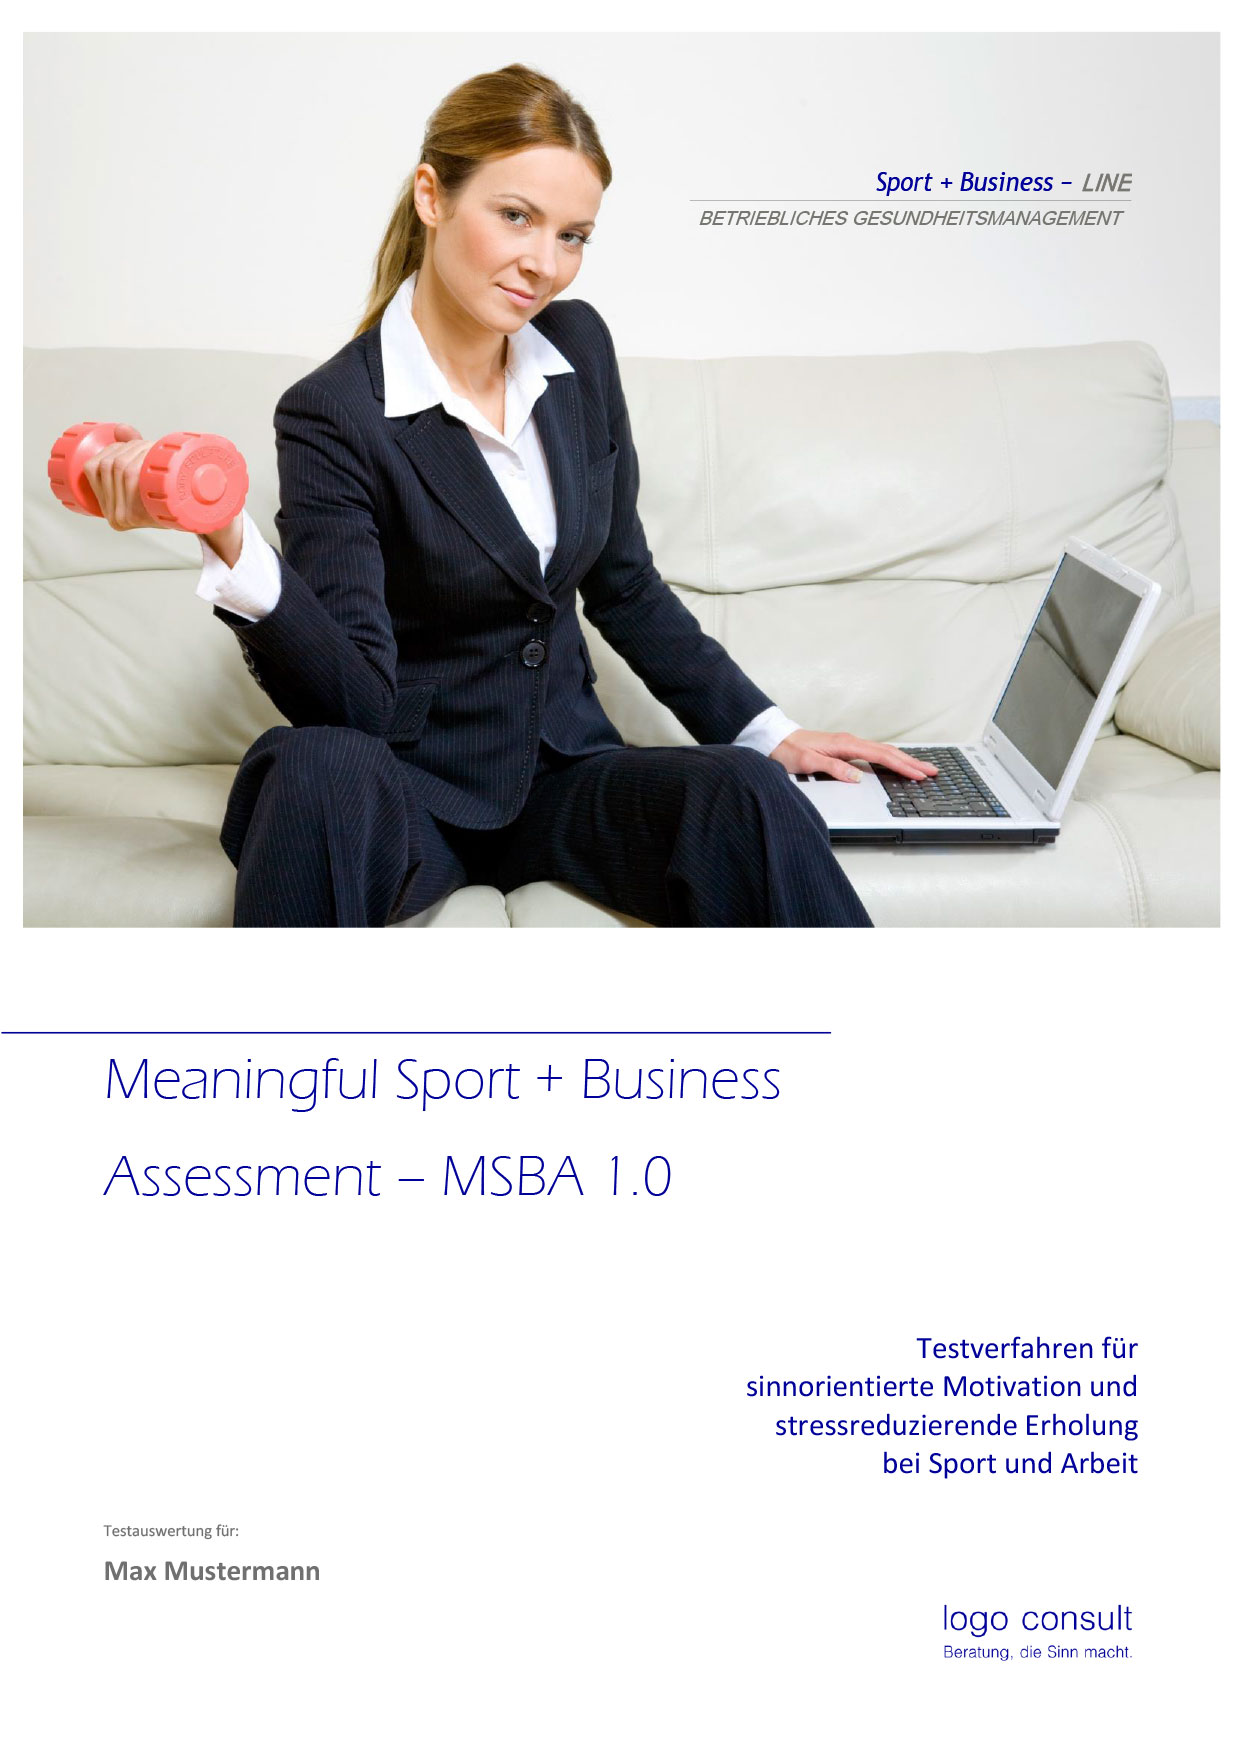 MSBA 1.0 – Meaningful Sport + Business Assessment